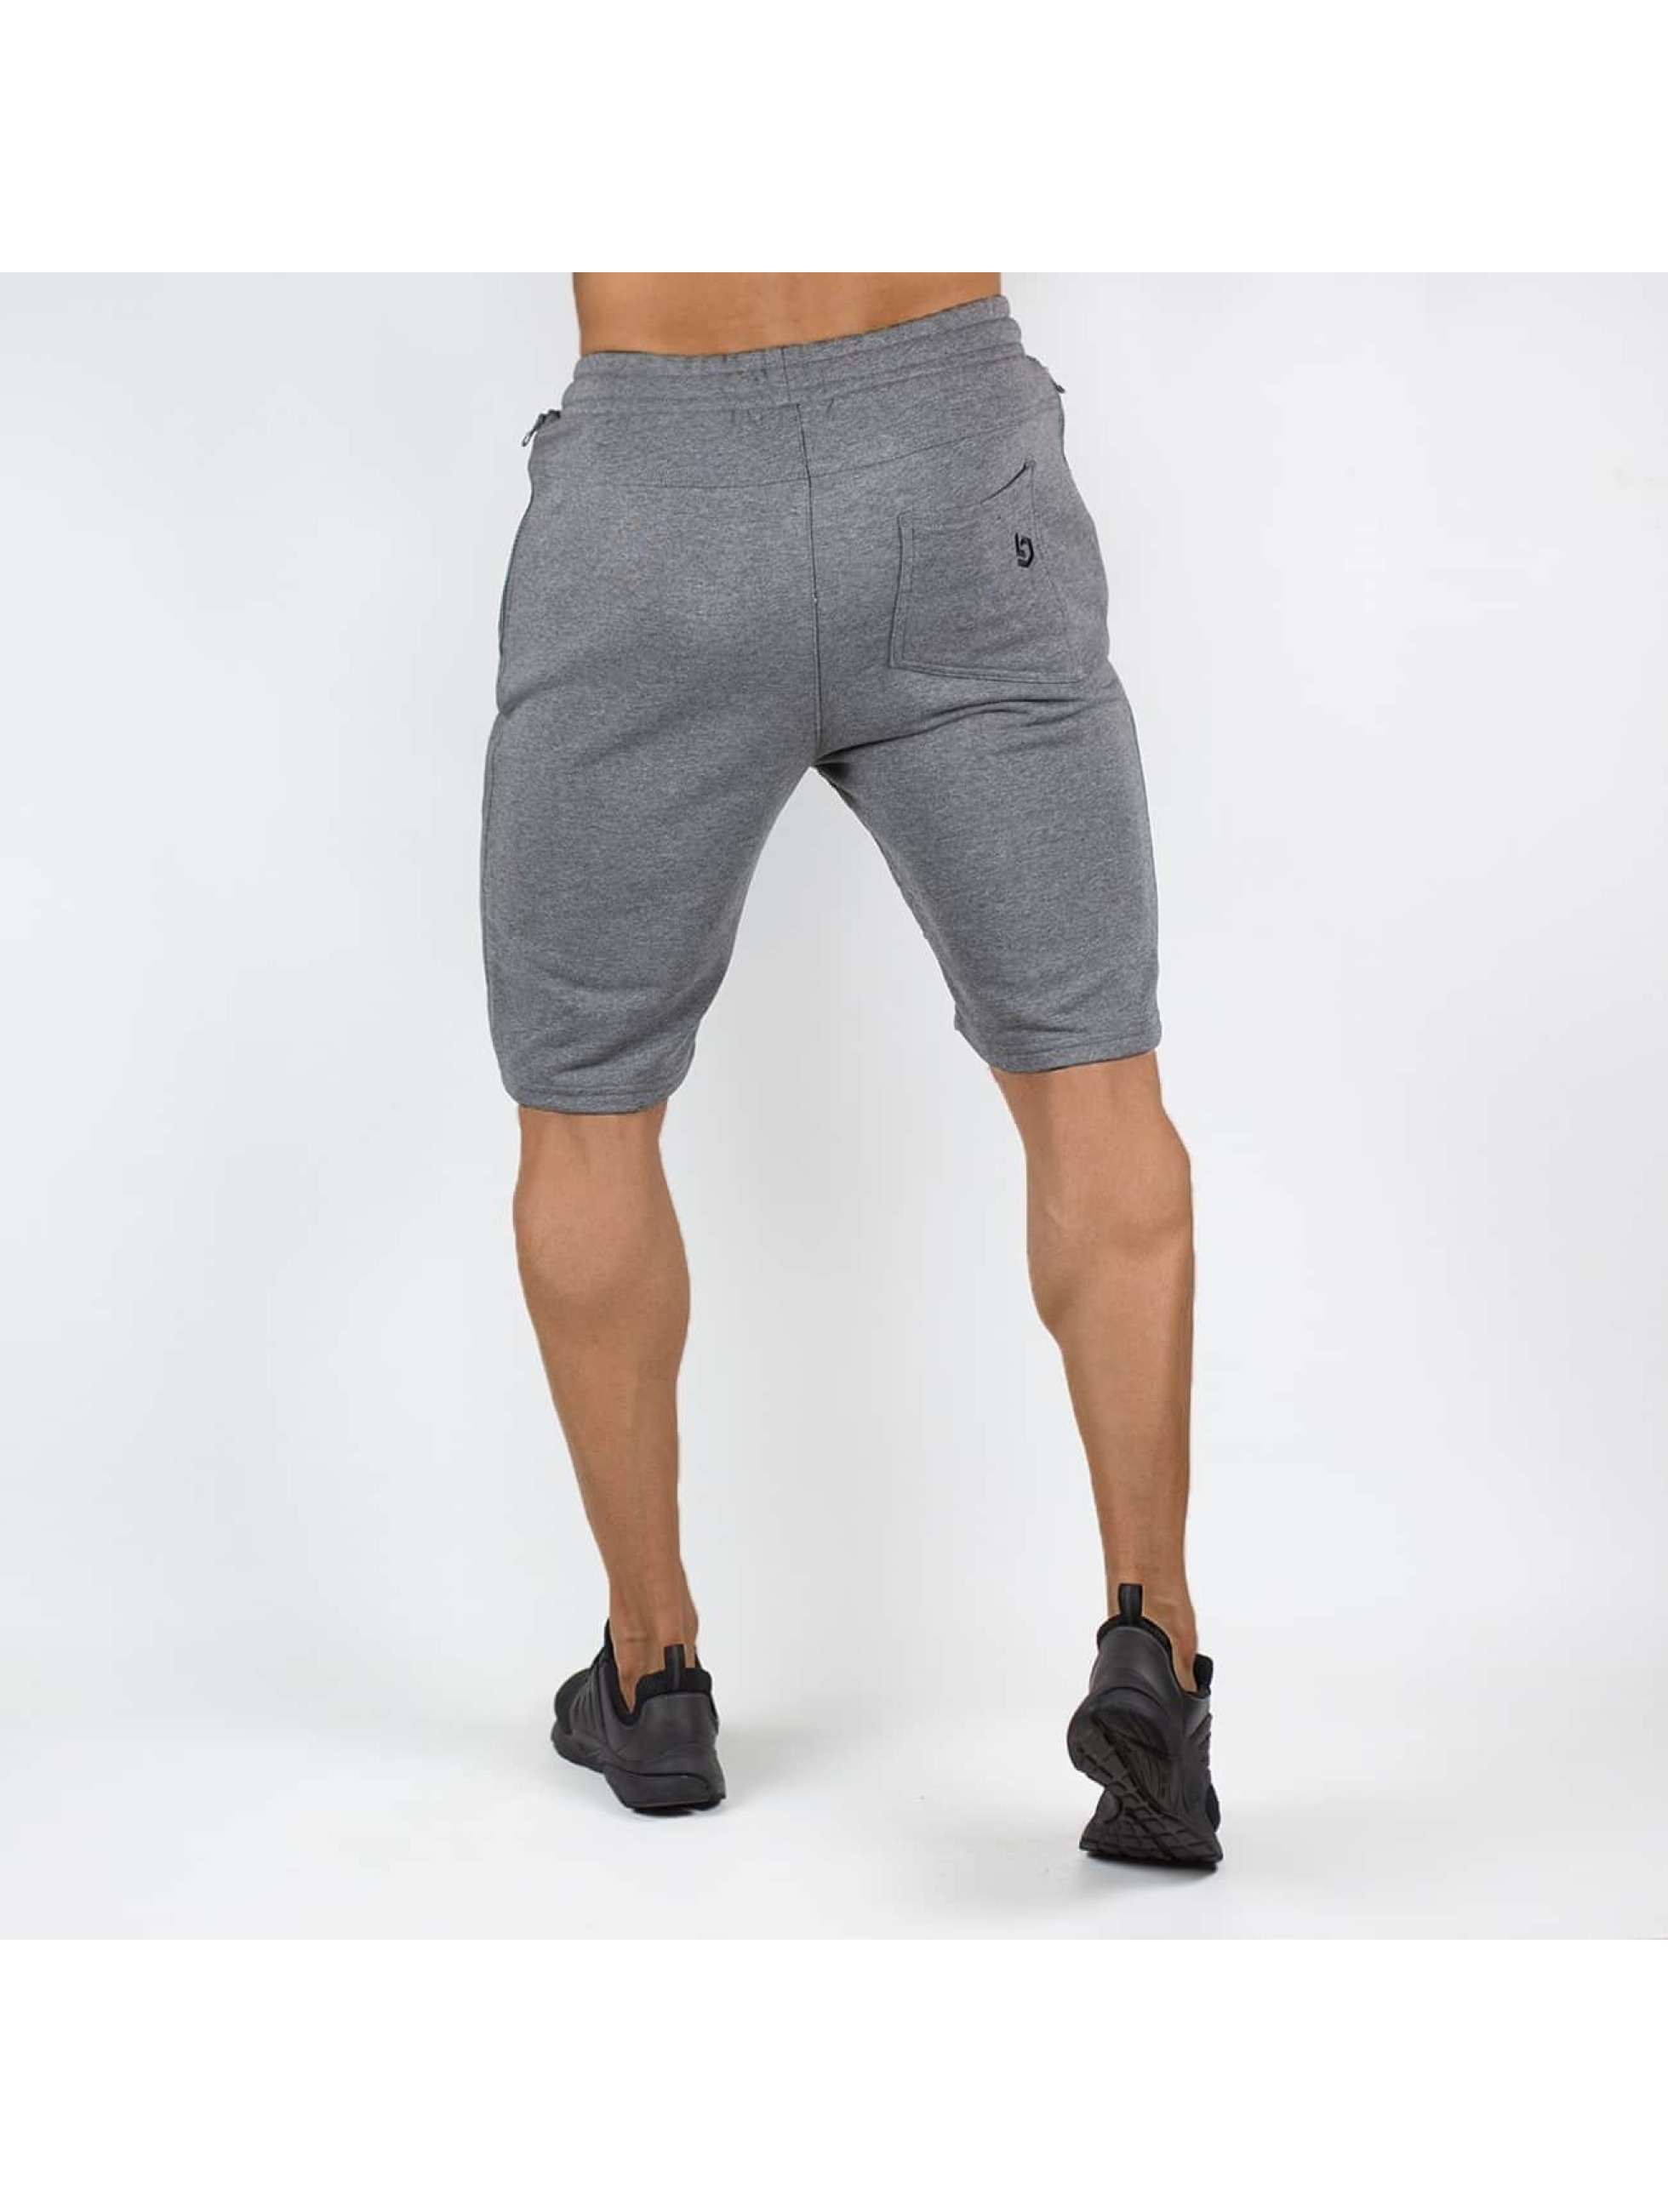 Beyond Limits Short Baseline grey